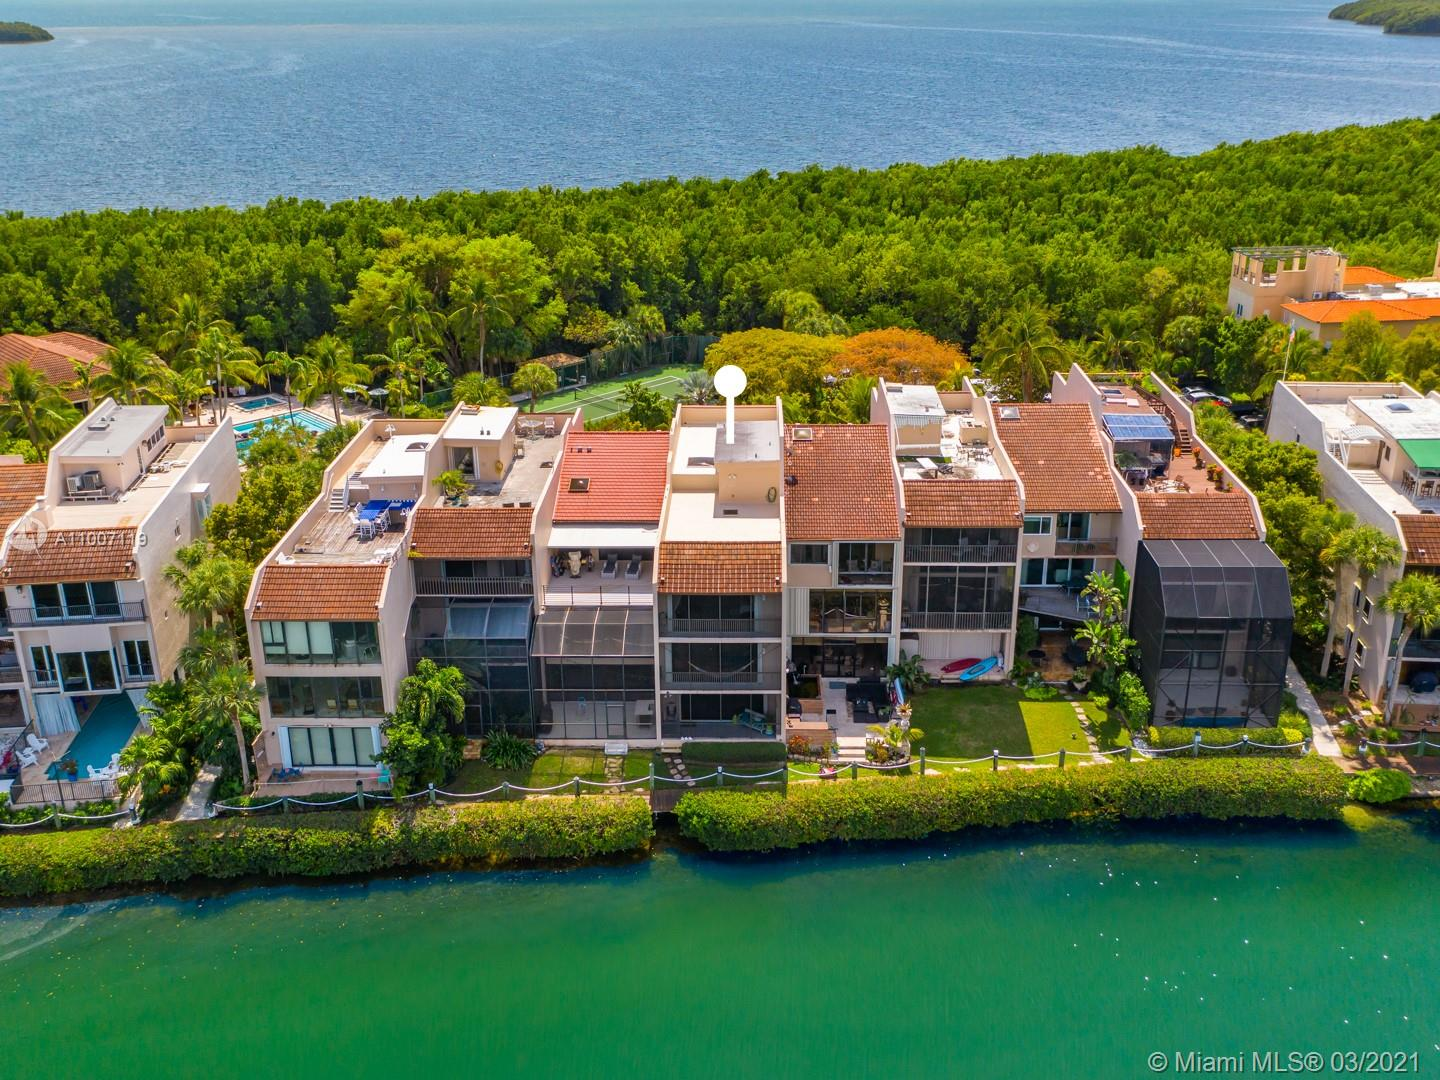 Live a true island lifestyle in one of the area's hidden gems, Royal Harbour. Kiteboard, paddleboard, hop on your boat, play tennis or swim w/o leaving the neighborhood! This XL waterfront townhome w/ loads of storage has an open flr plan w/ 3 interior levels + rooftop deck. 2nd-flr main living area incl updated open kitchen/family room - prepare dinner while watching manatee! Spacious master + 2 addl bdrms on 3rd flr with 1st flr bdrm/living area + full bath perfect for guests, a teen &/or workspace.  Community incl securely gated entrance w/ on-site guard & manager, beach area w/ Chickee hut & vb court, clubhouse, fitness room, pool/hot tub, 2 tennis courts, boardwalk, & marina. +/- 50' BOAT SLIP FOR SALE SEPARATELY ($290,000).  Be sure to see virtual tour. Listing agent is an owner.